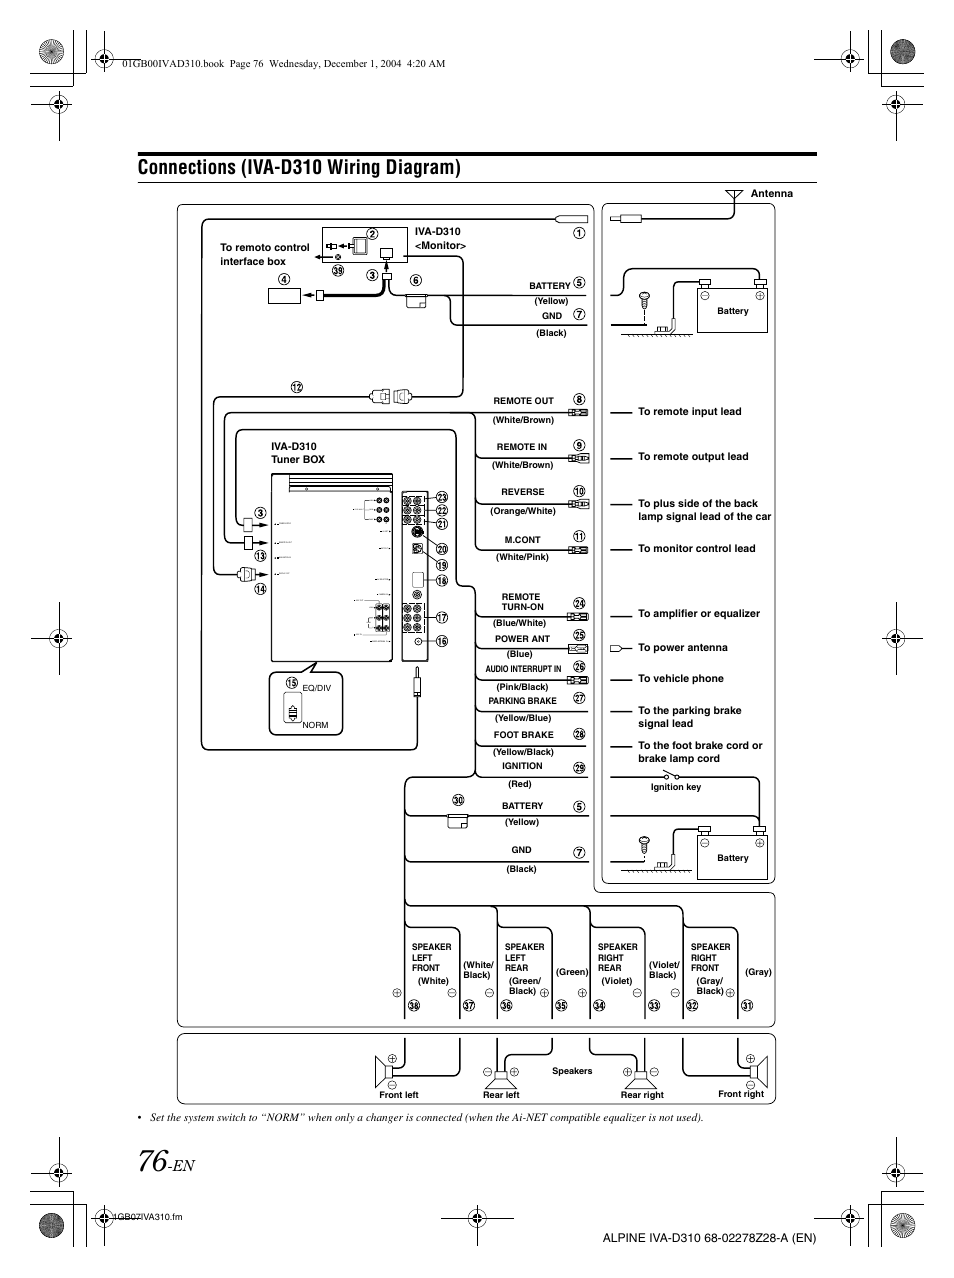 alpine iva d310 page78 alpine iva d310 wiring diagram alpine iva w205 wiring diagram at virtualis.co